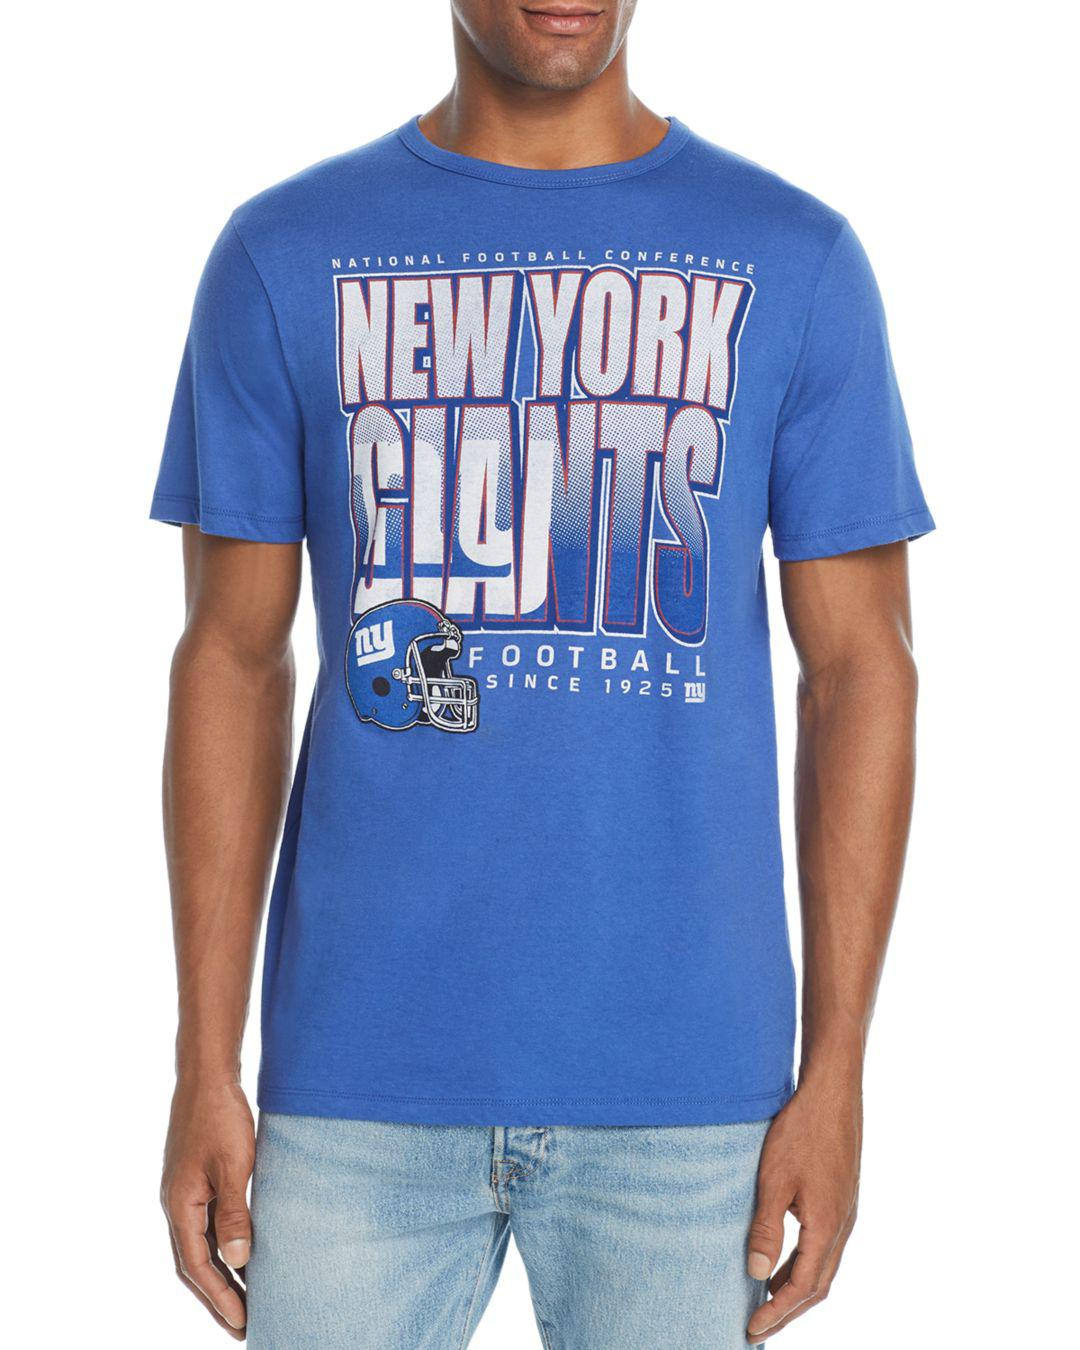 2c96dd938 Junk Food New York Giants Classic Graphic Tee in Blue for Men - Lyst